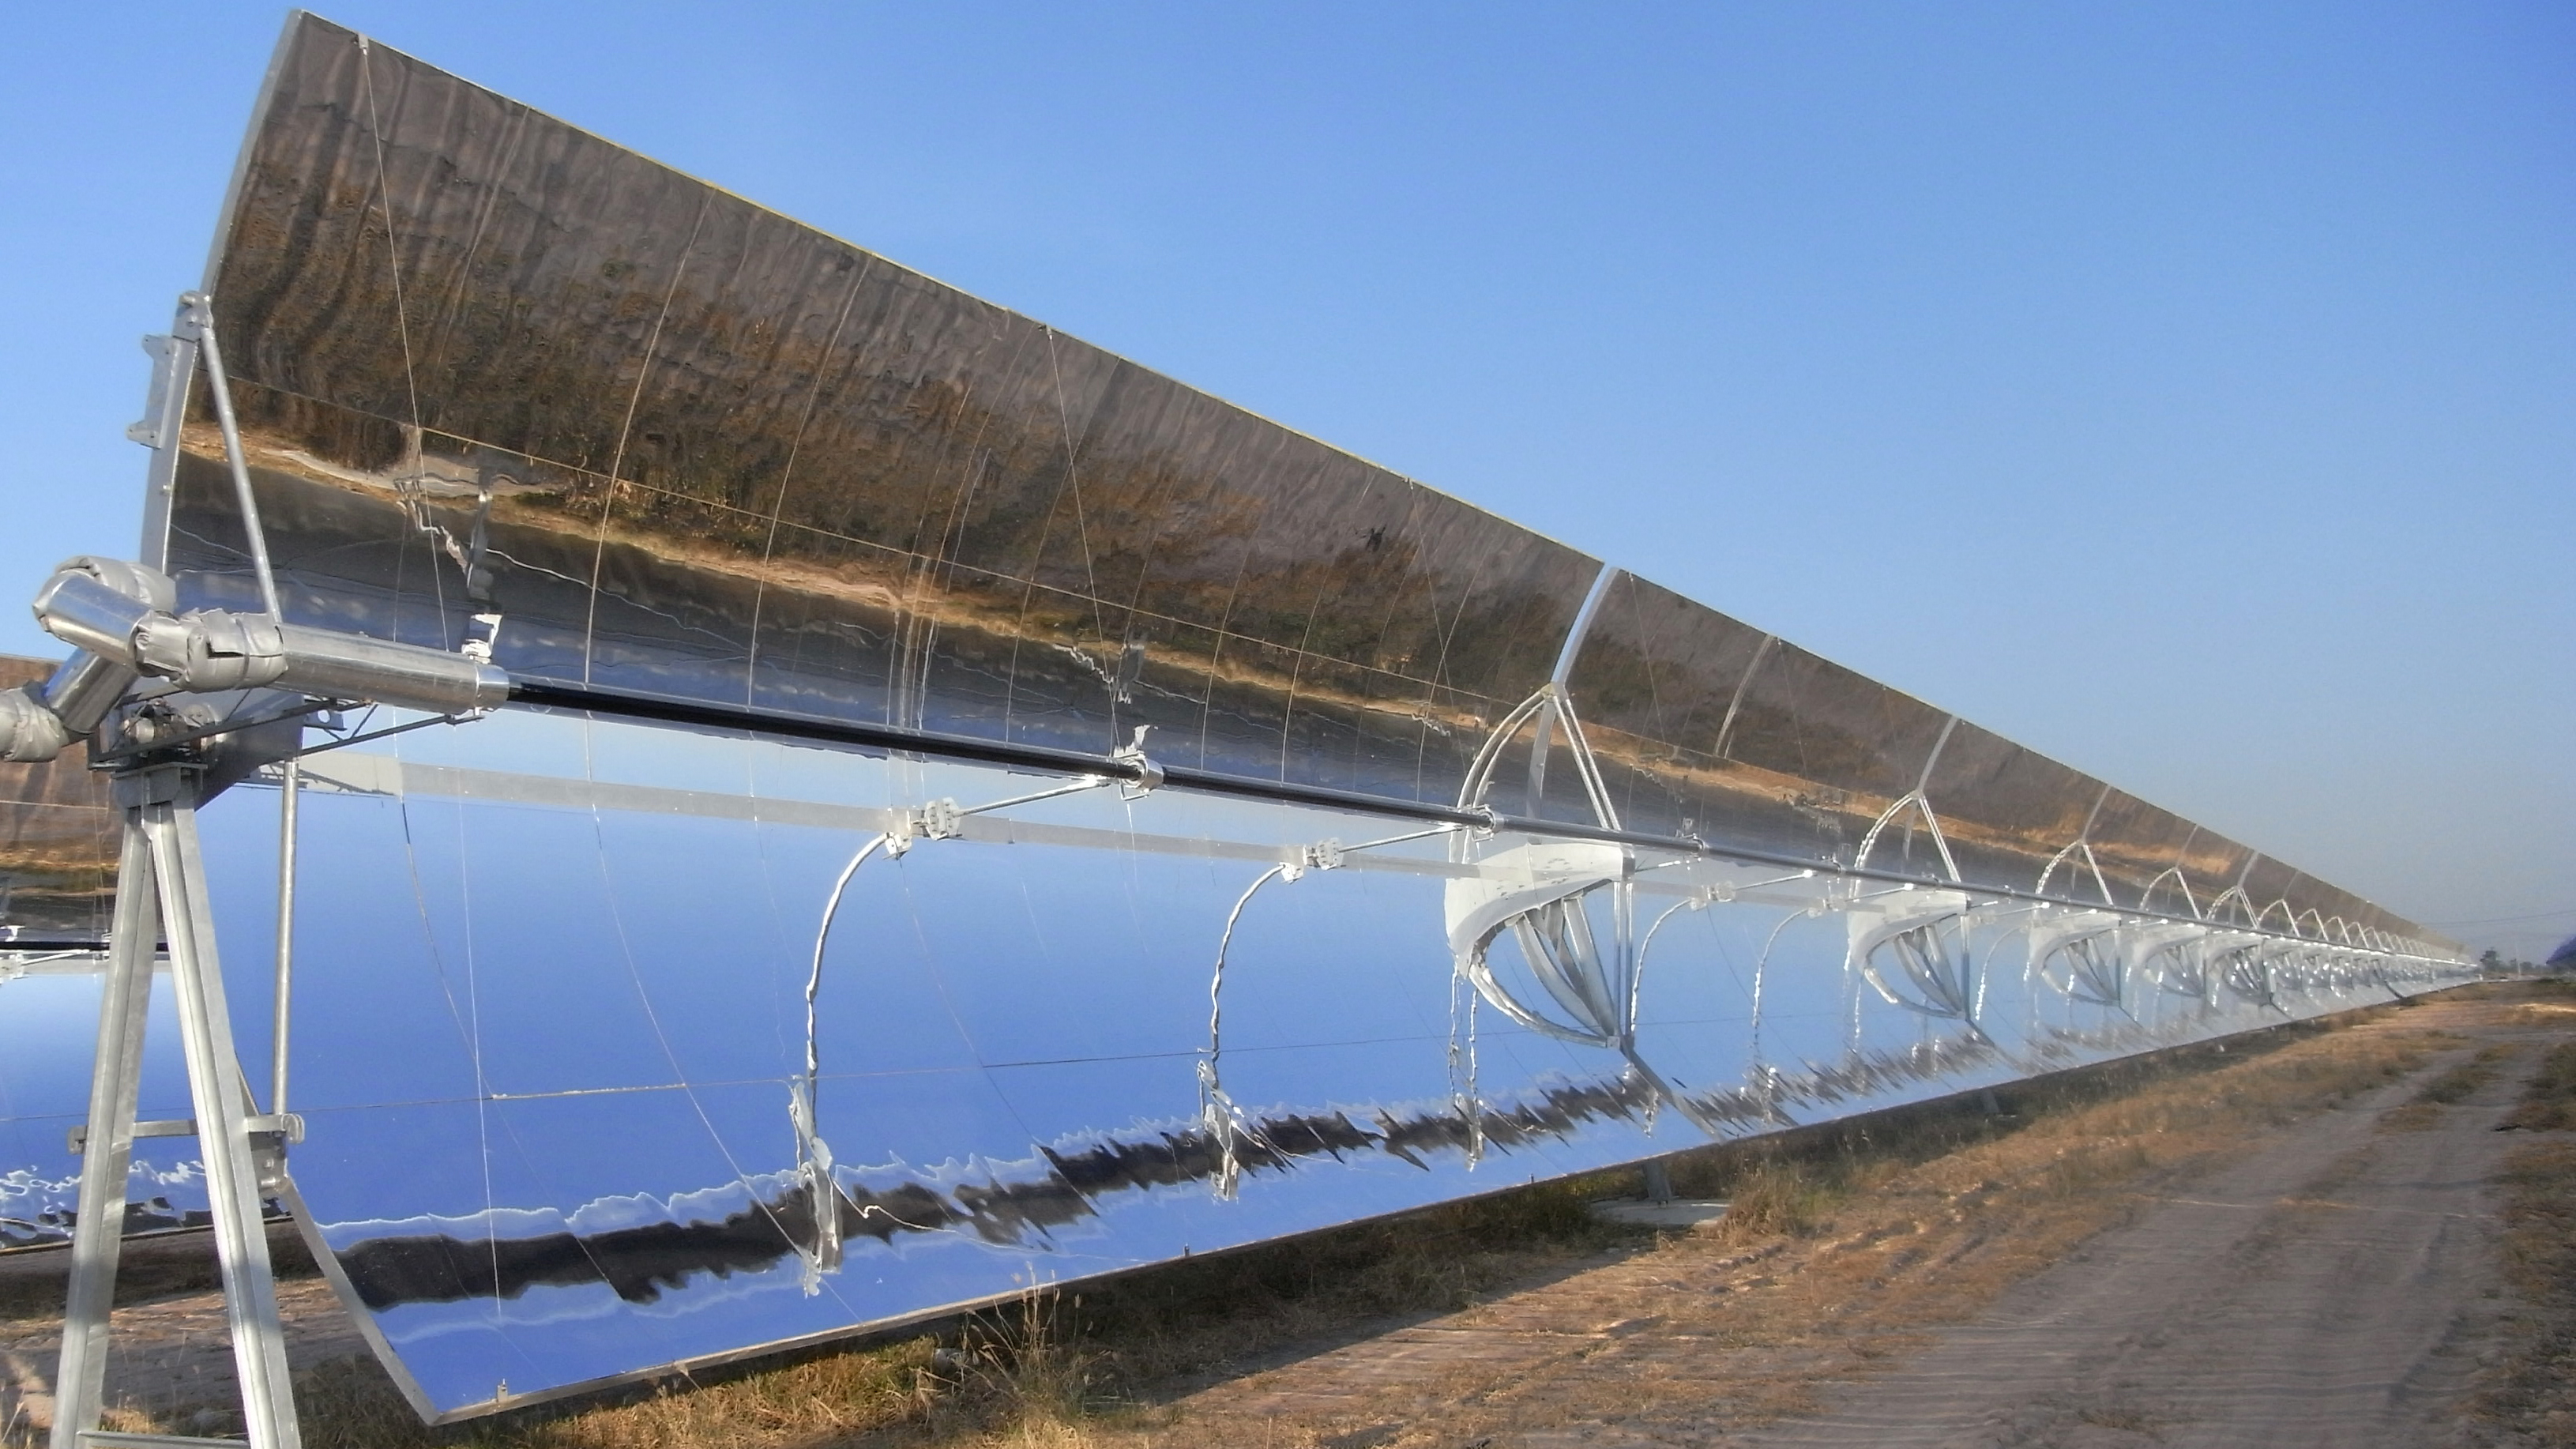 DLR Press Portal Press Releases First solar thermal power